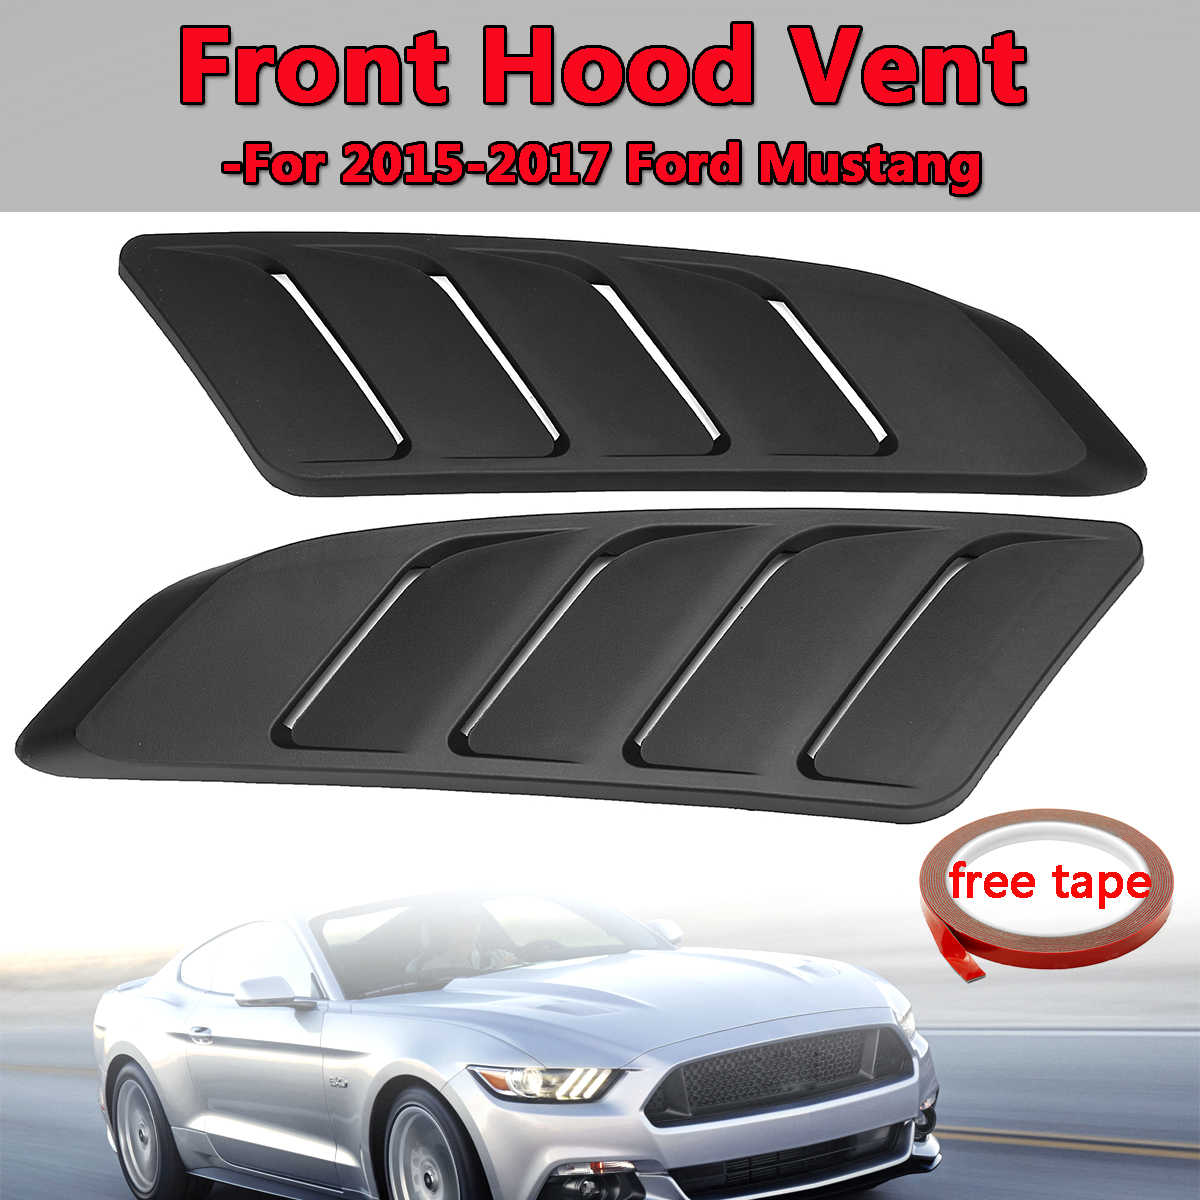 Front Hood Vent Fit For 2015-2017 For Ford For Mustang Panel Trim Black 2Pcs Universal Car Air Intake Scoop Bonnet Hood Vent